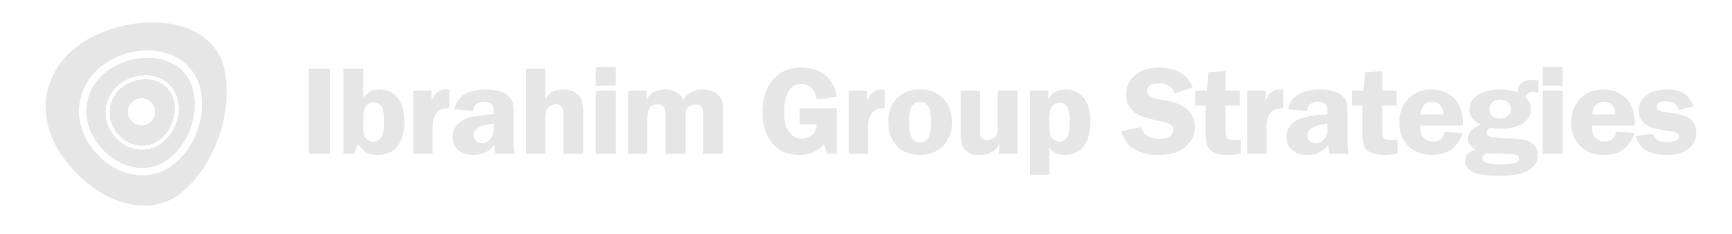 Ibrahim Group Strategies